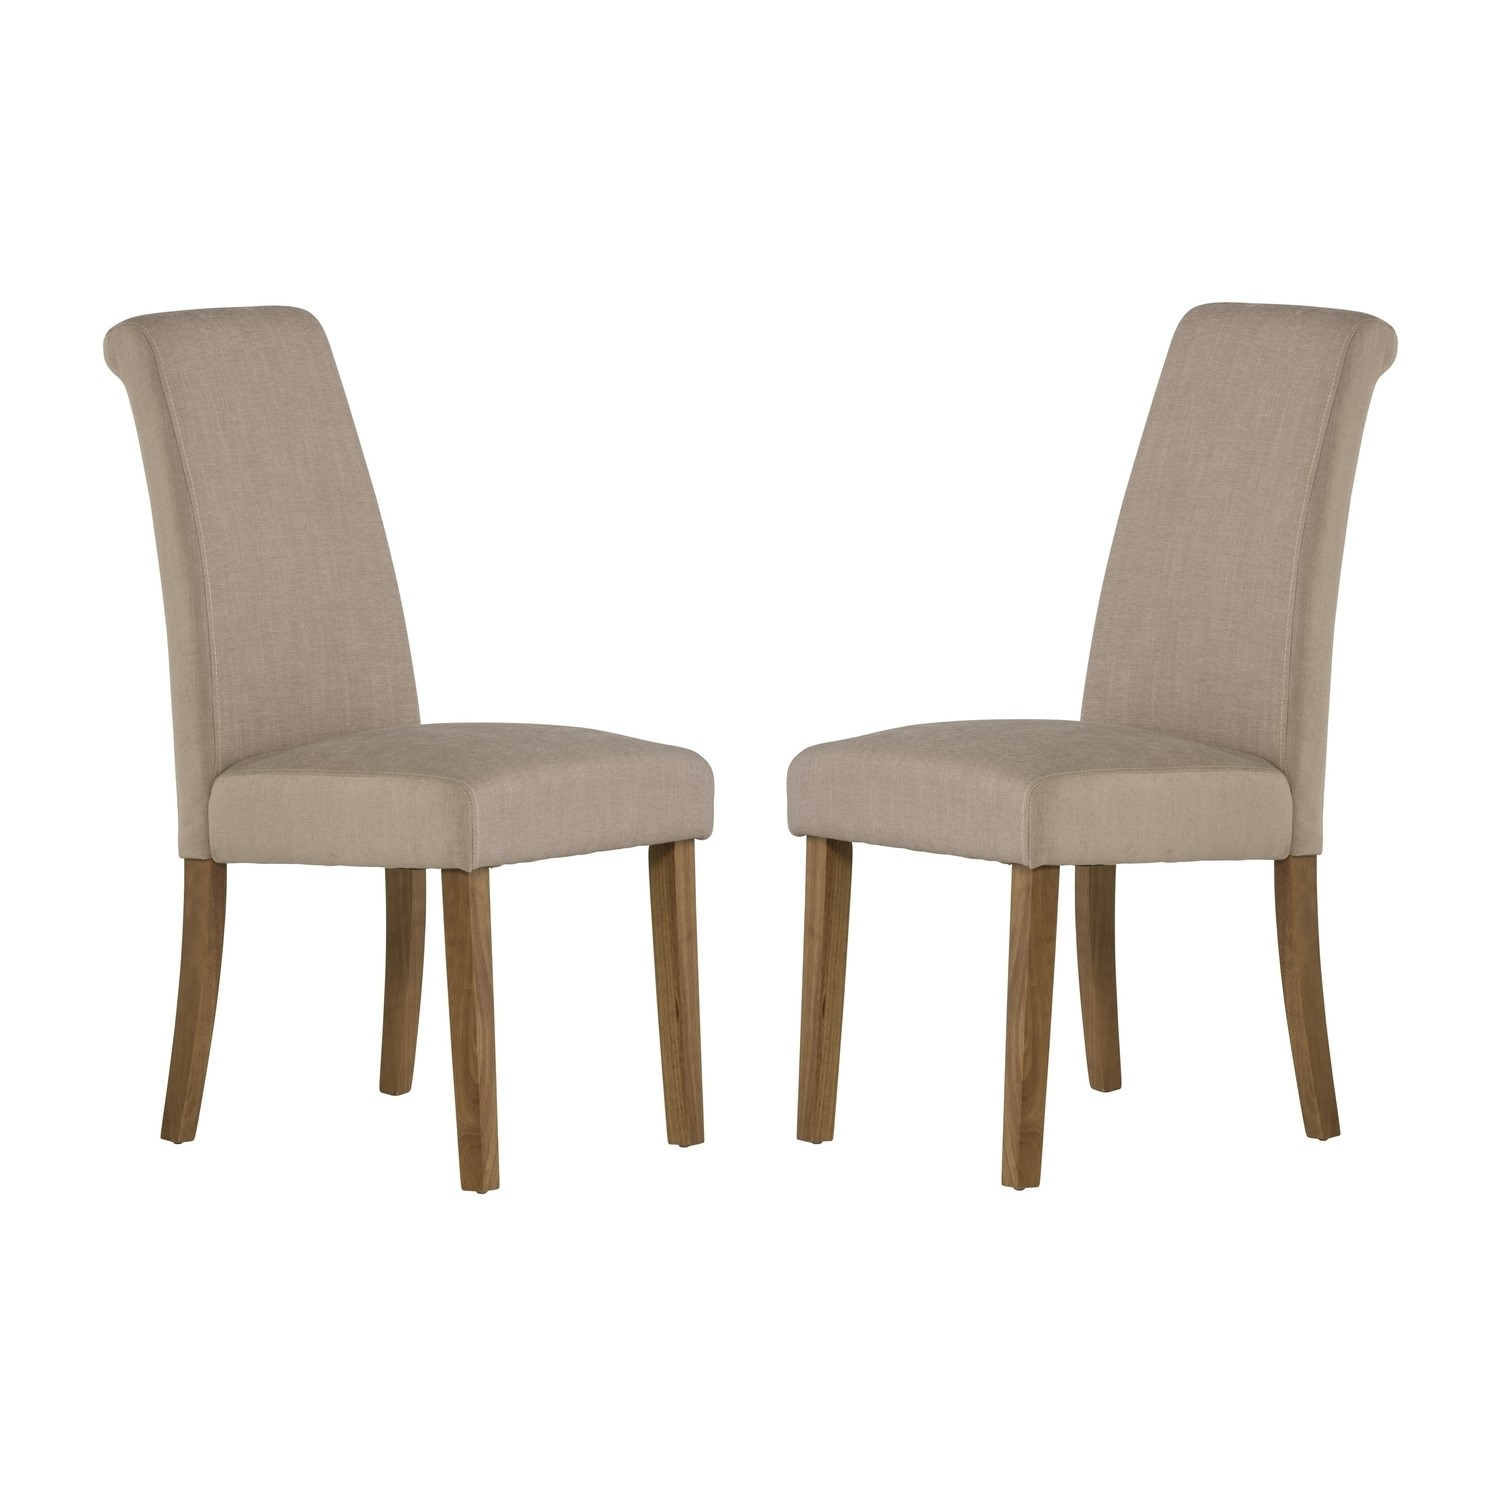 Tuscany Pair Of Dining Chairs In Beige Fabric Furniture123